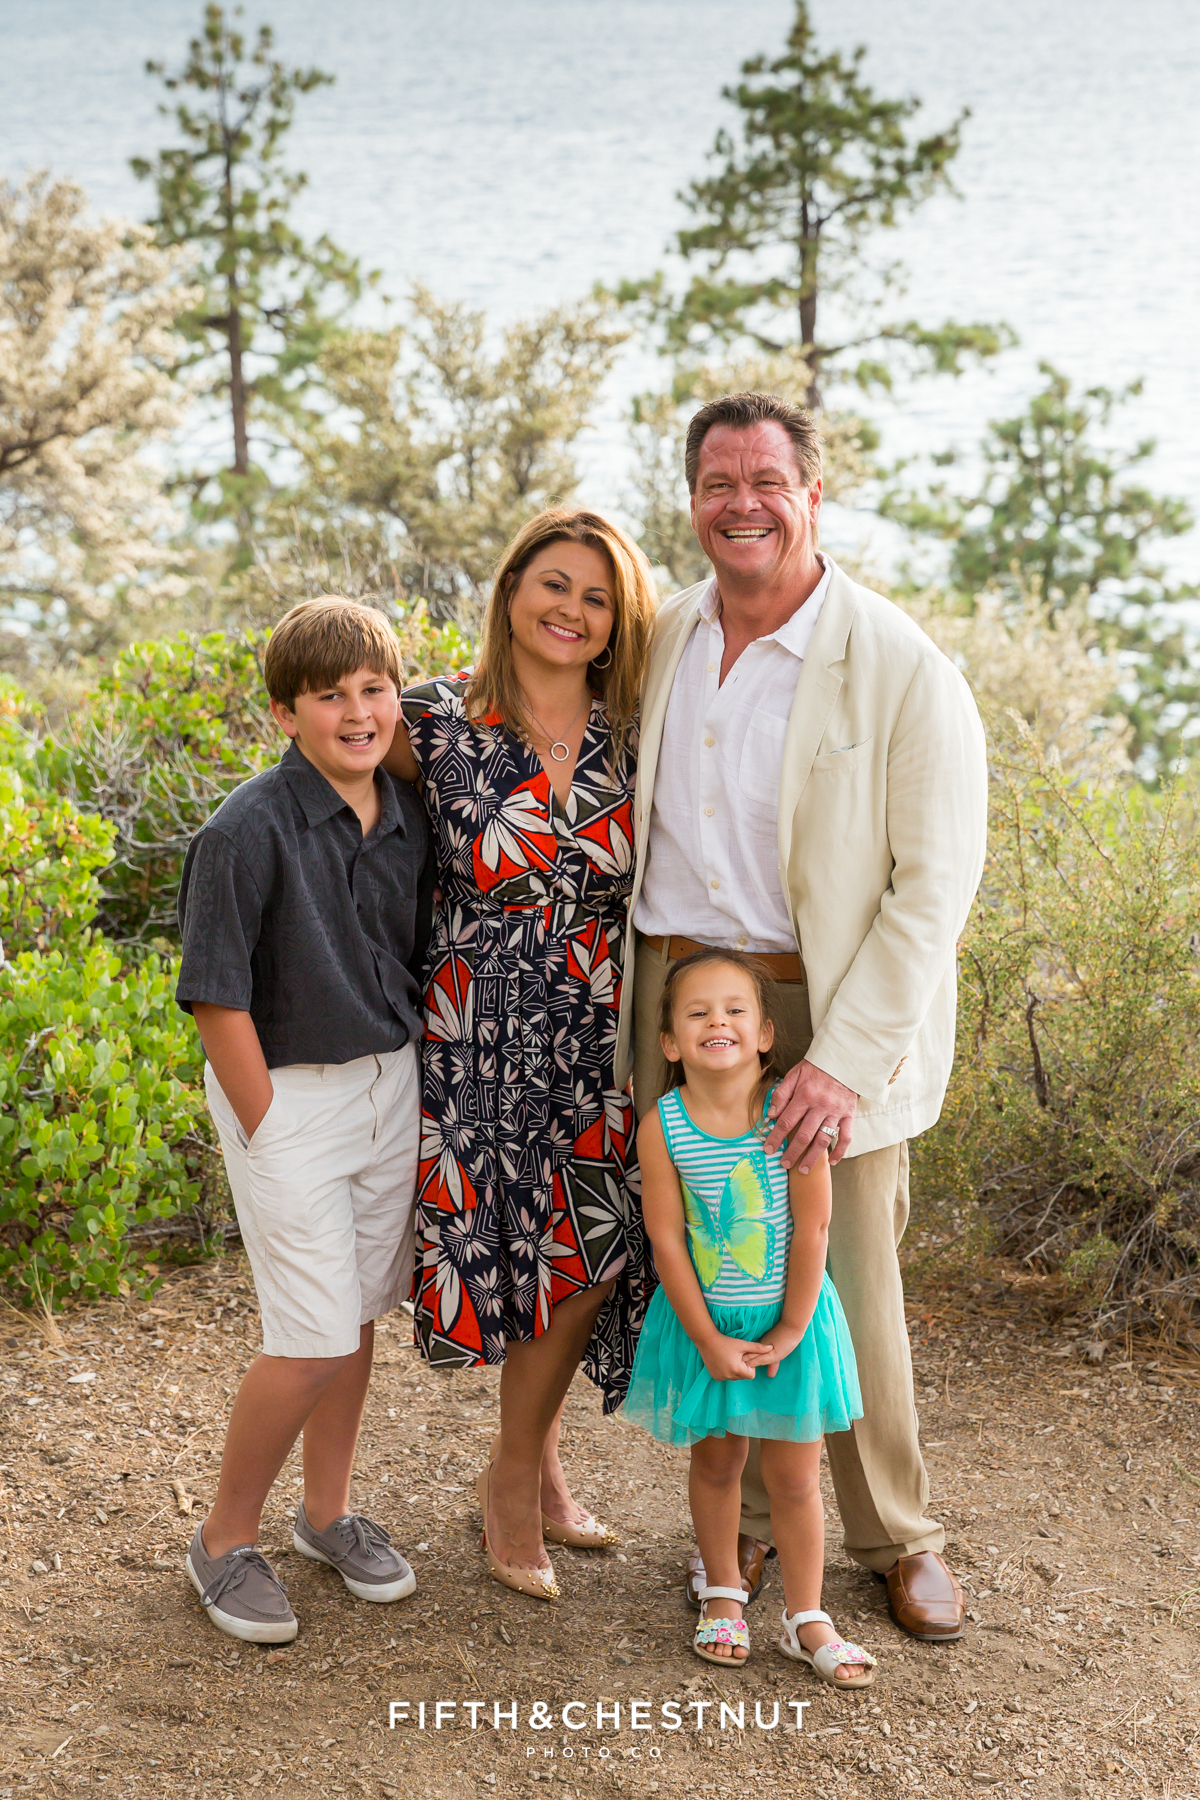 50th Anniversary and Family Photos at Logan Shoals Vista Point by Lake Tahoe Family Photographer